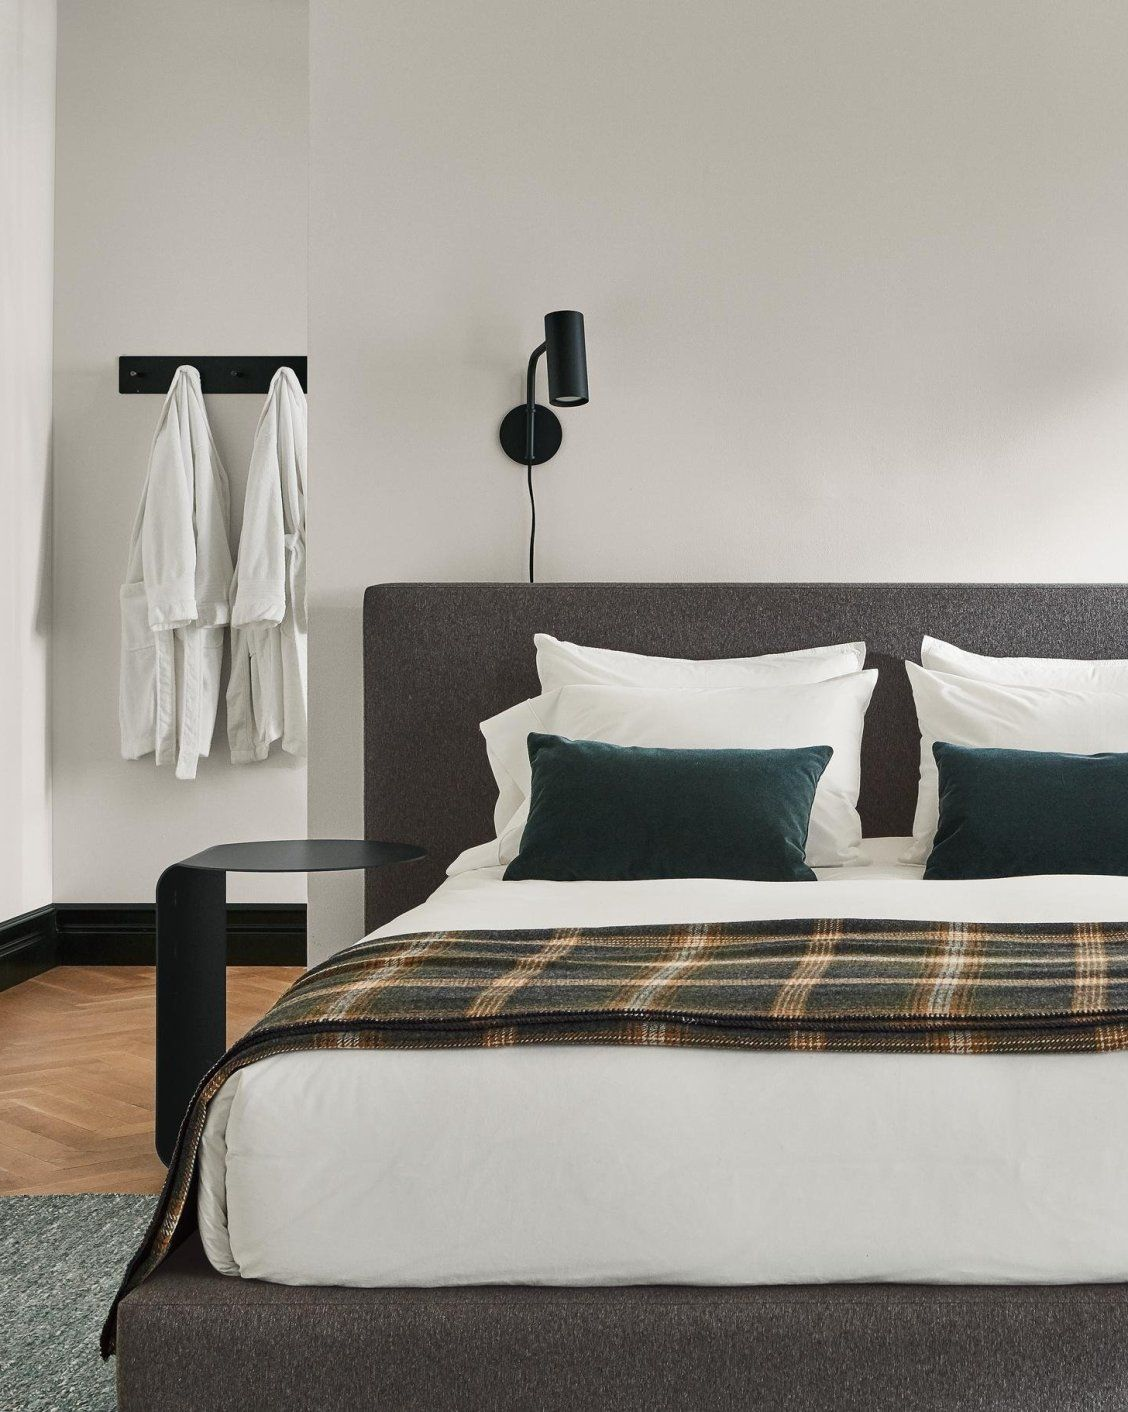 Hotel Guest Room: Our Modern Hotel Furniture Lends A Distinctive Look And